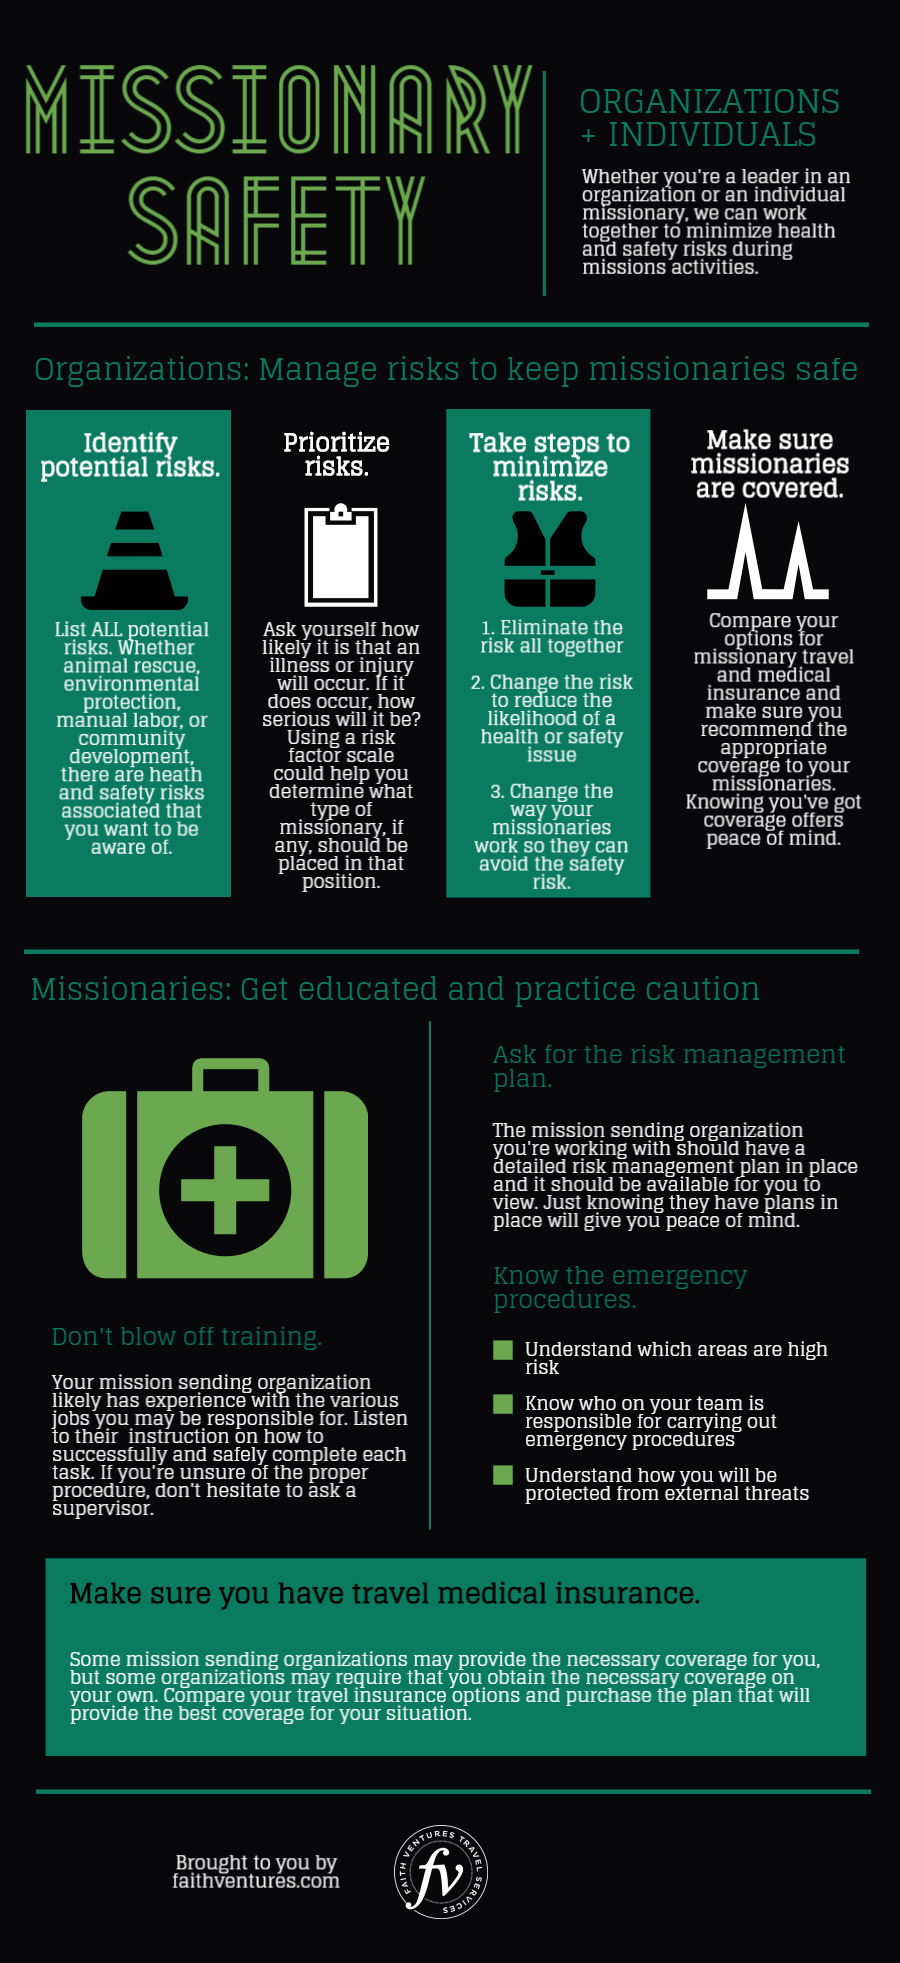 mission trip safety tips infographic